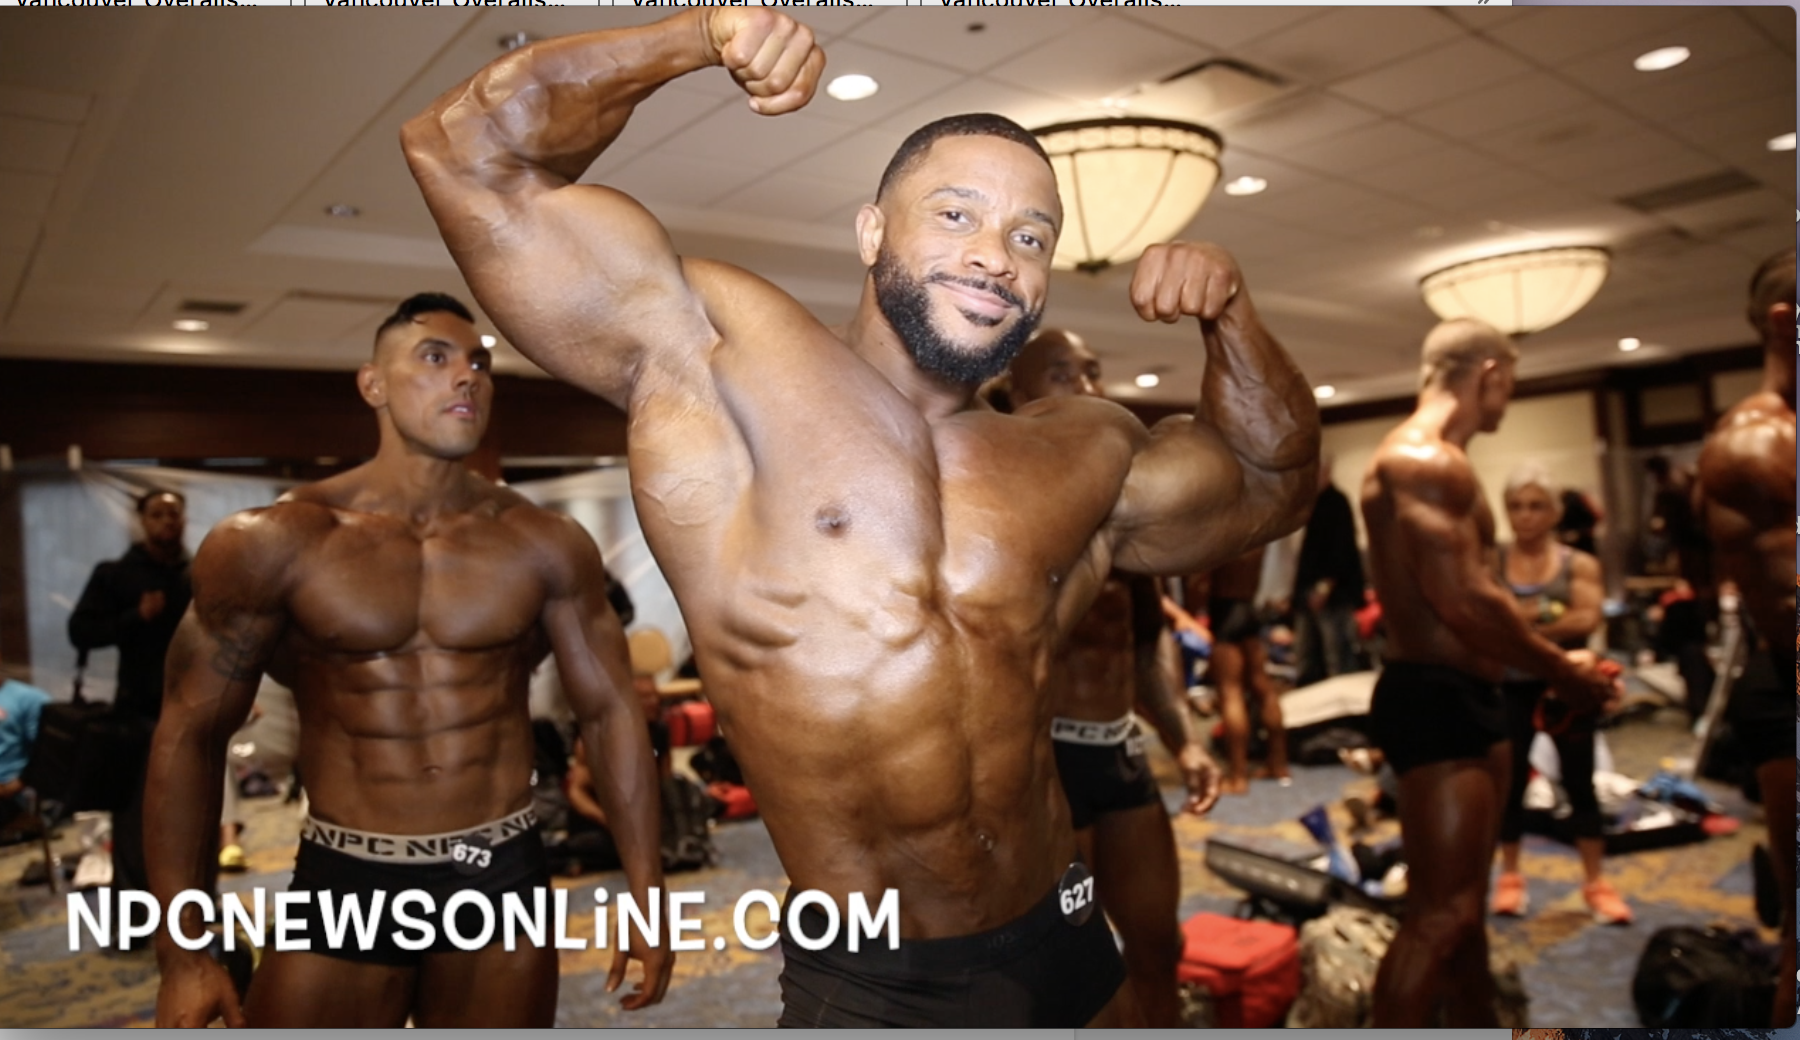 2017 IFBB North American Open Men's Classic Physique Backstage Video.